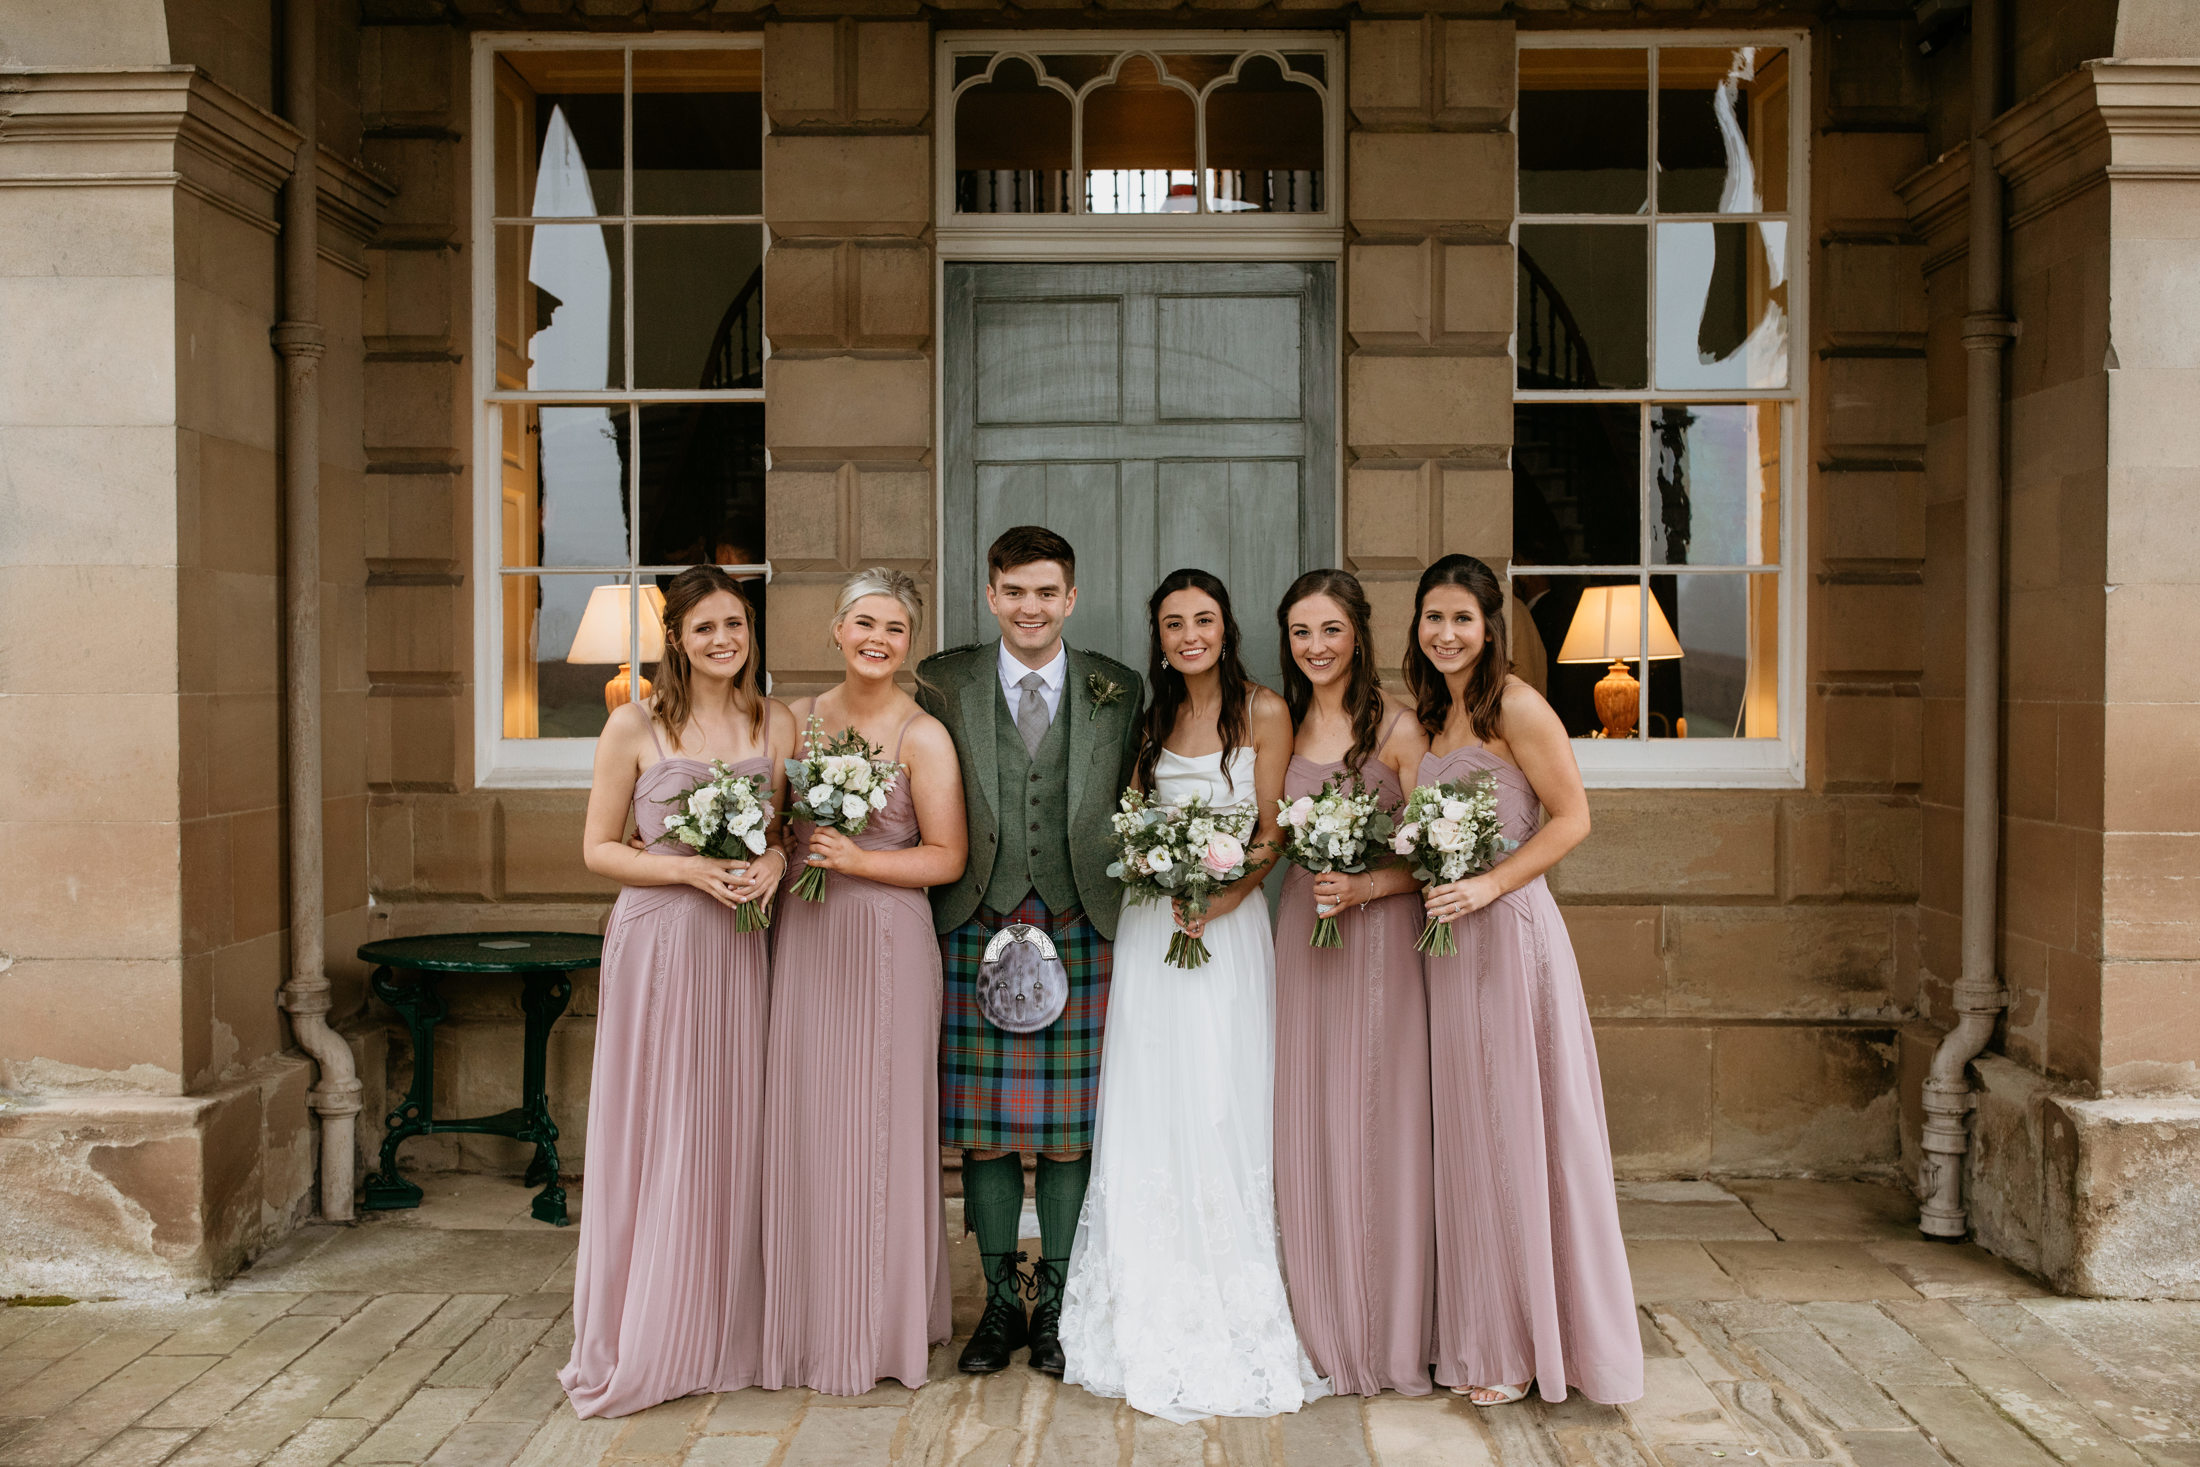 420-Brodie-Lewis-Wedderburn-Castle-Barns-Duns-Lianne-Mackay-Wedding-Photography-Edinburgh-Glasgow-Scotland.jpg